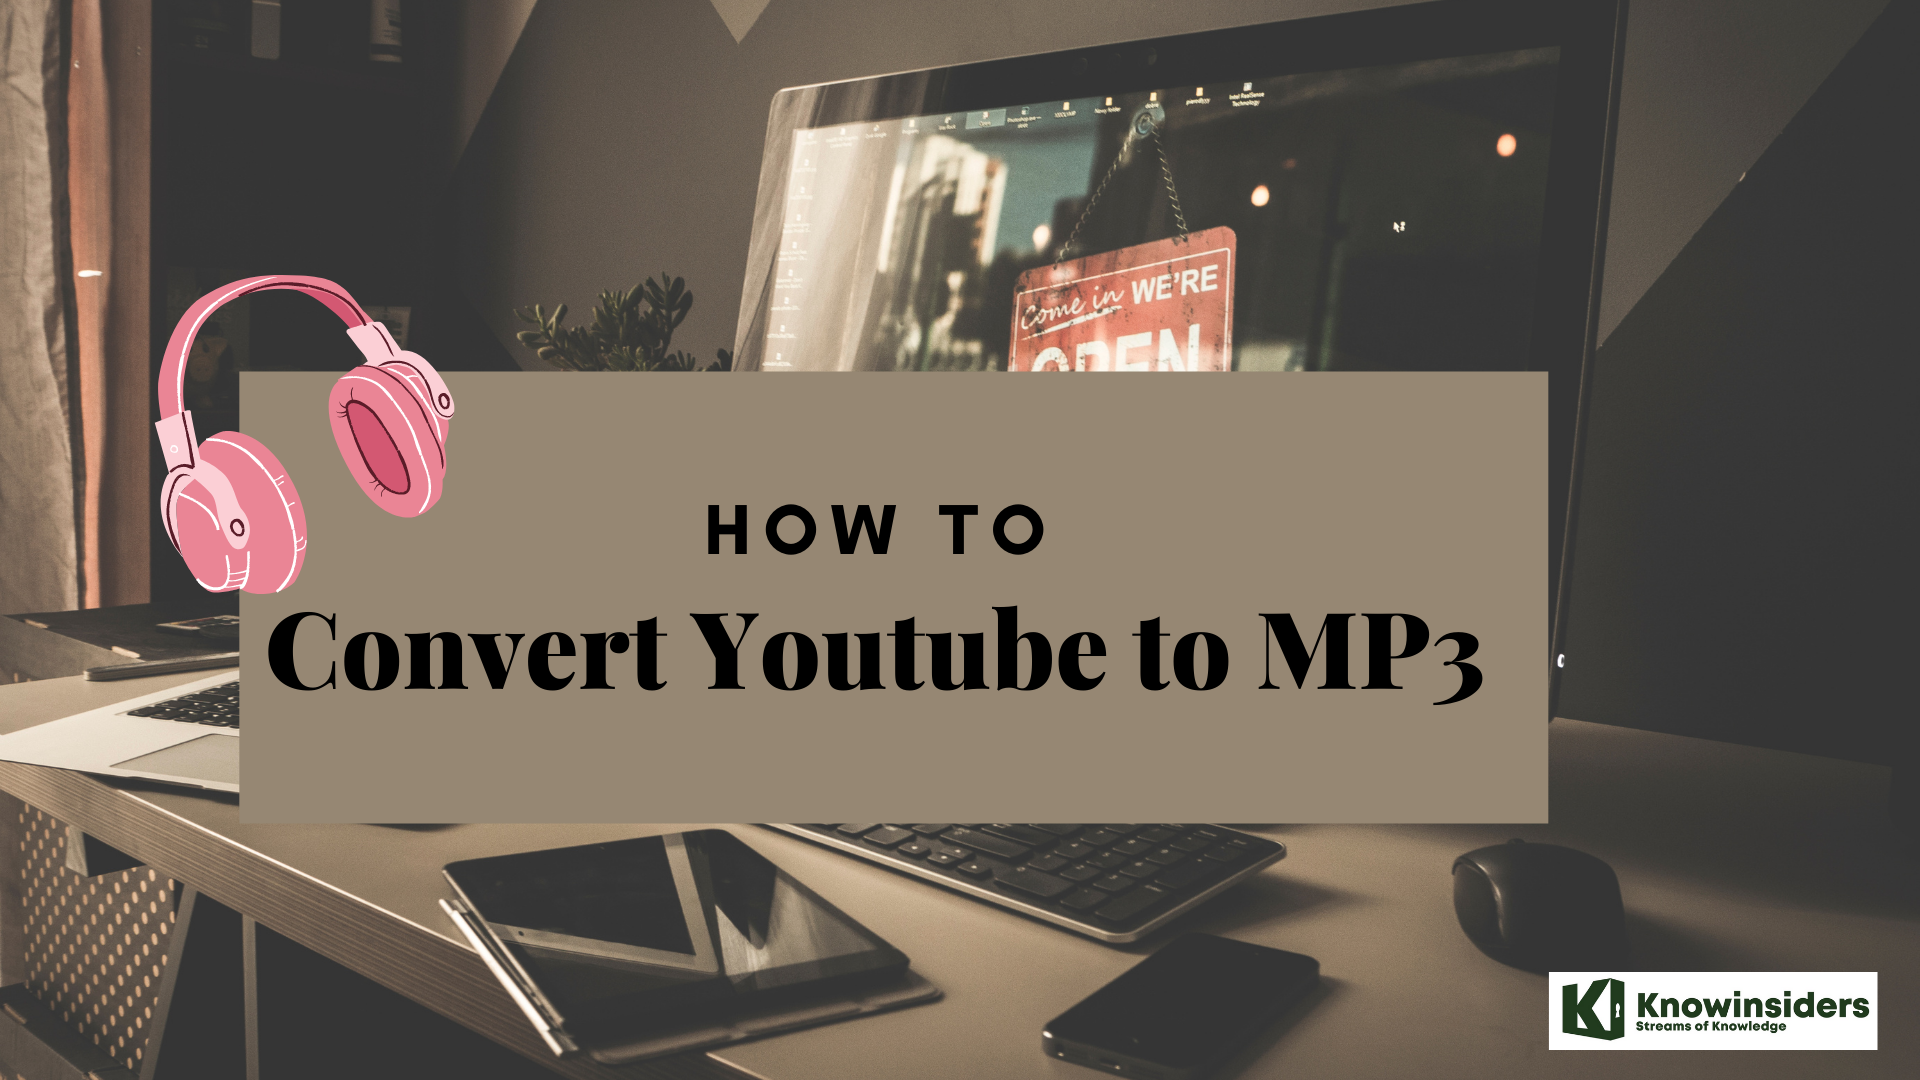 How To Convert Youtube Videos To MP3: Simple and Easy Steps